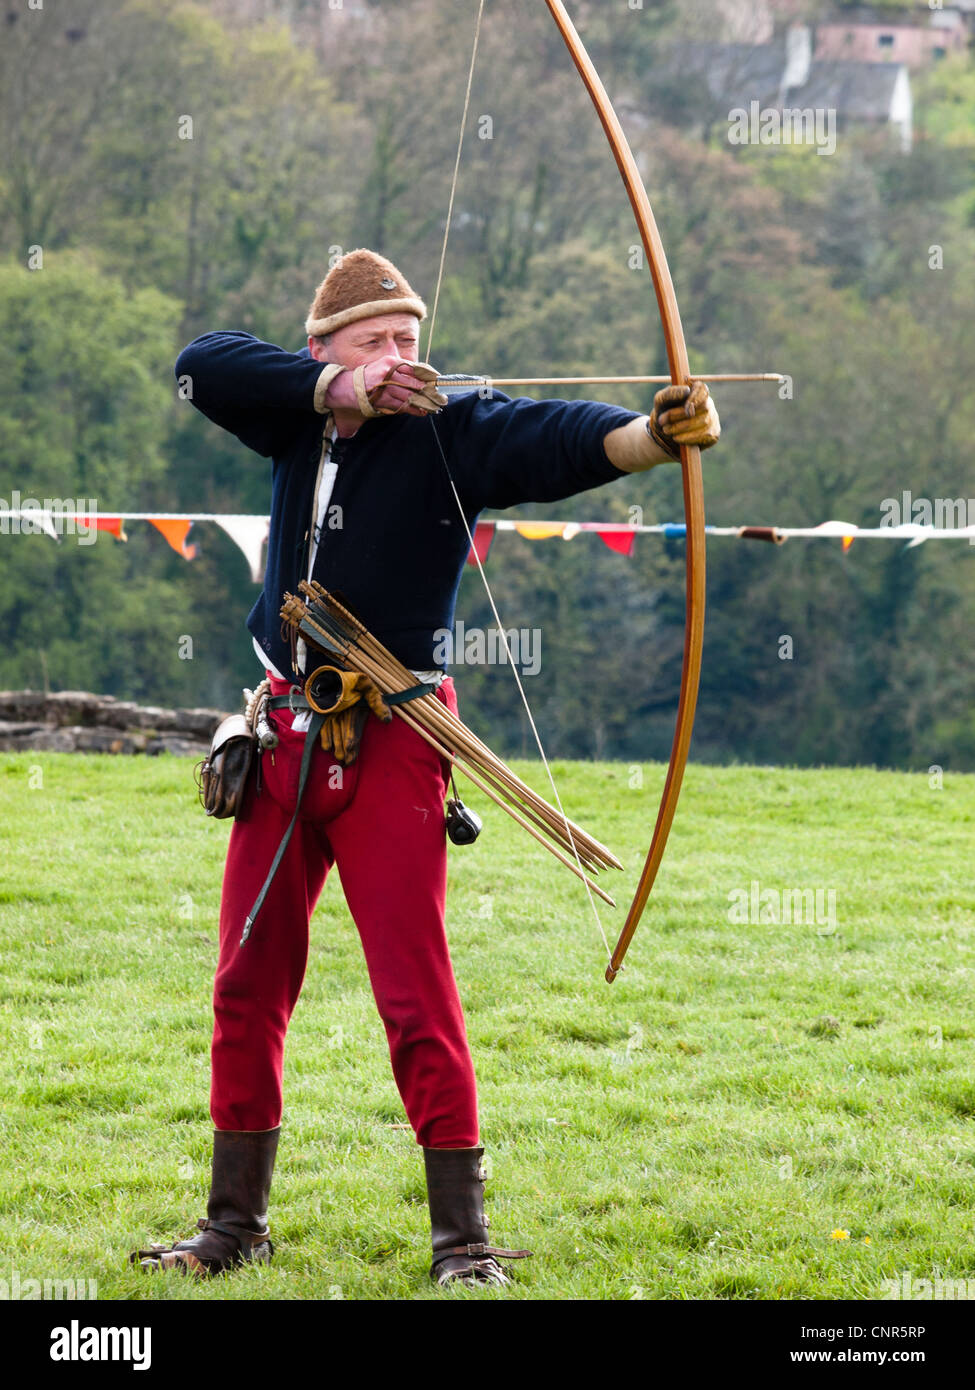 At a medieval reenactment an archer demonstrates the english longbow stock photo